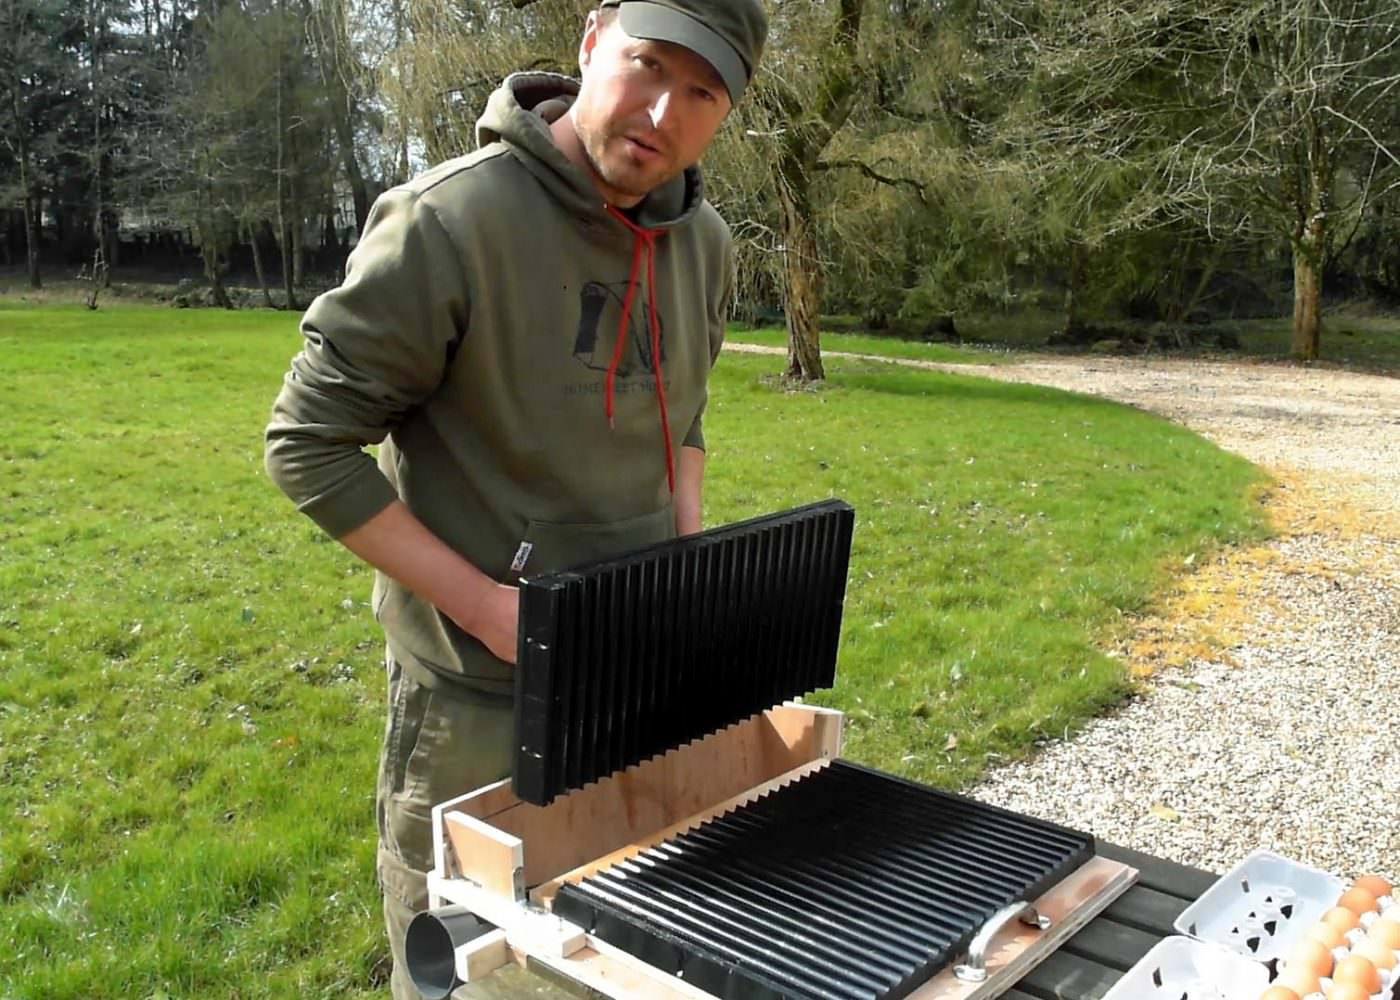 Bait rolling table